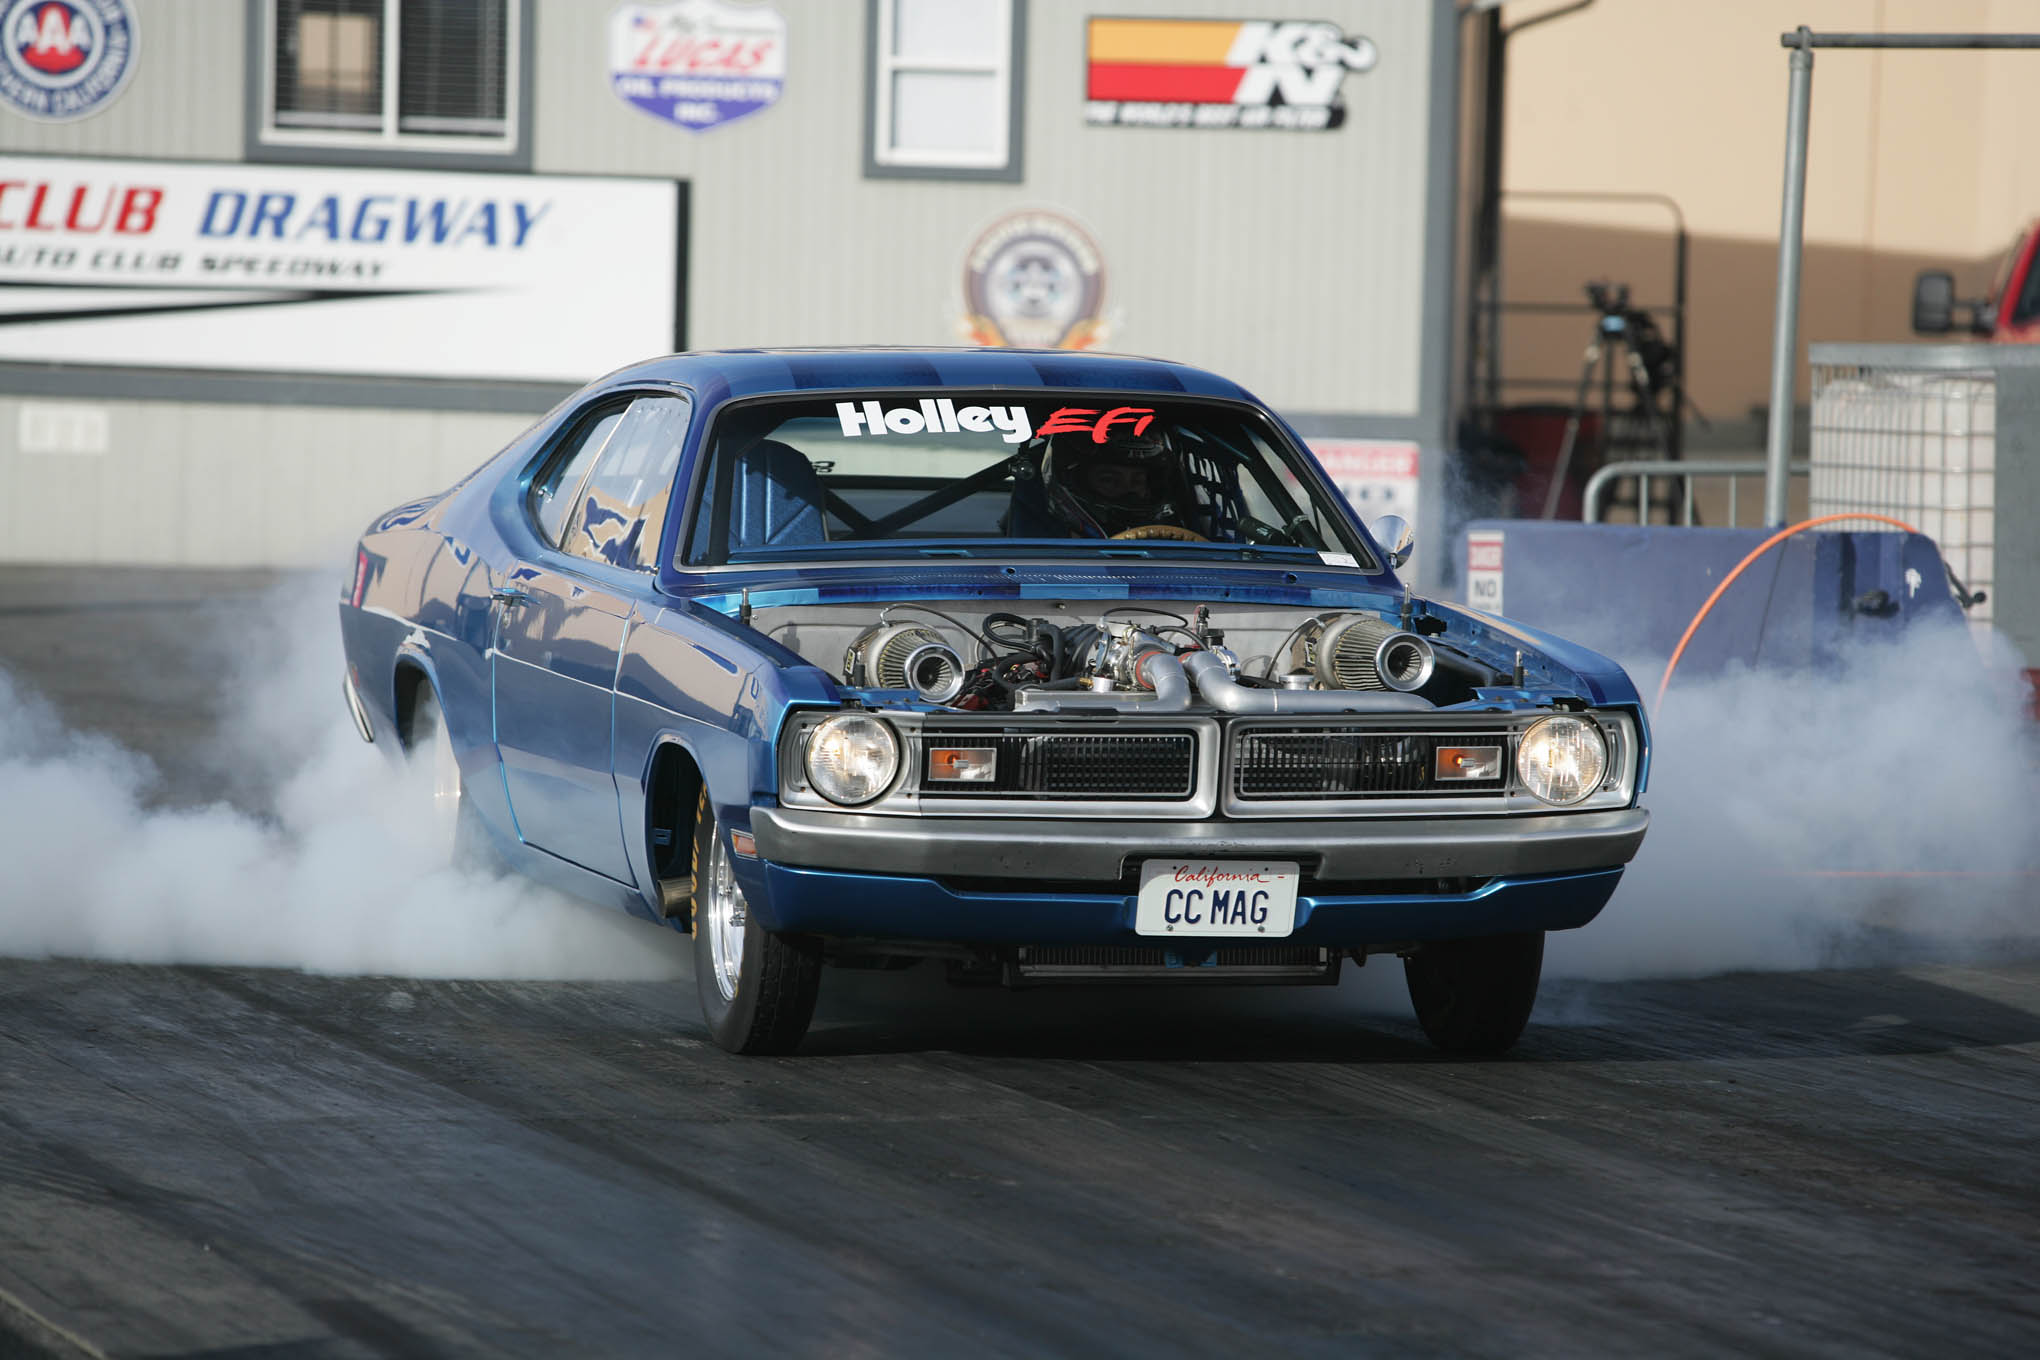 To keep the new transmission alive, you need to keep it cool and shift it correctly in the burnout box. Transmission fluid will start to burn, change color, and smell when it gets hot. You can prevent damage by checking the fluid after each run. If it is burning, you'll need to run the engine to pump the fluid through the cooler. If the fluid is overheating on the street, you'll need to make sure you have an adequate oil cooler.